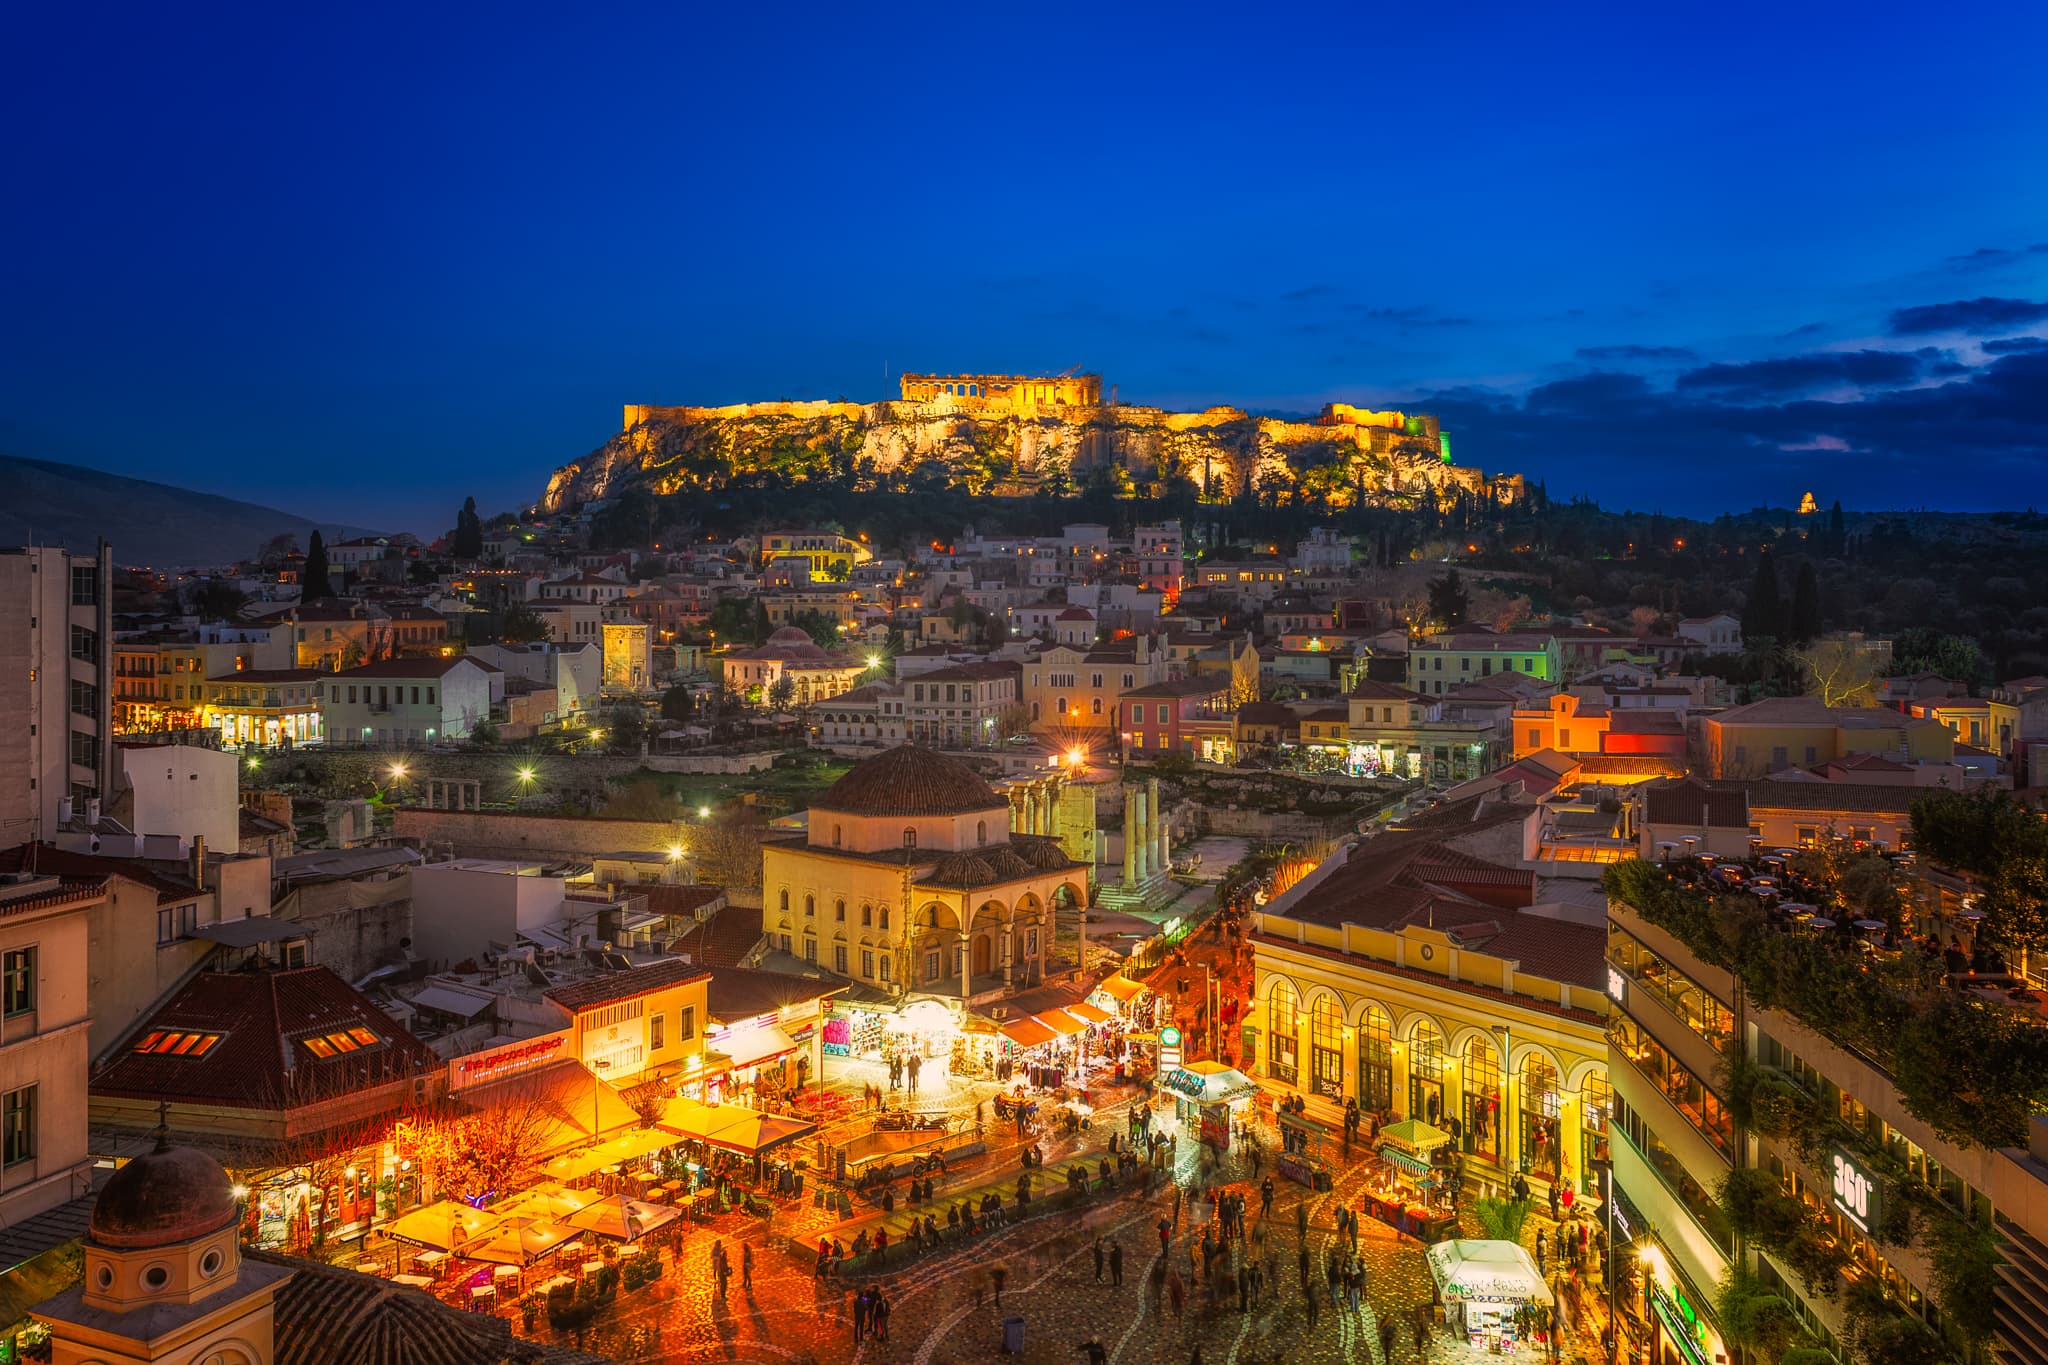 Athens Monastiraki Square at Night and Acropolis in background